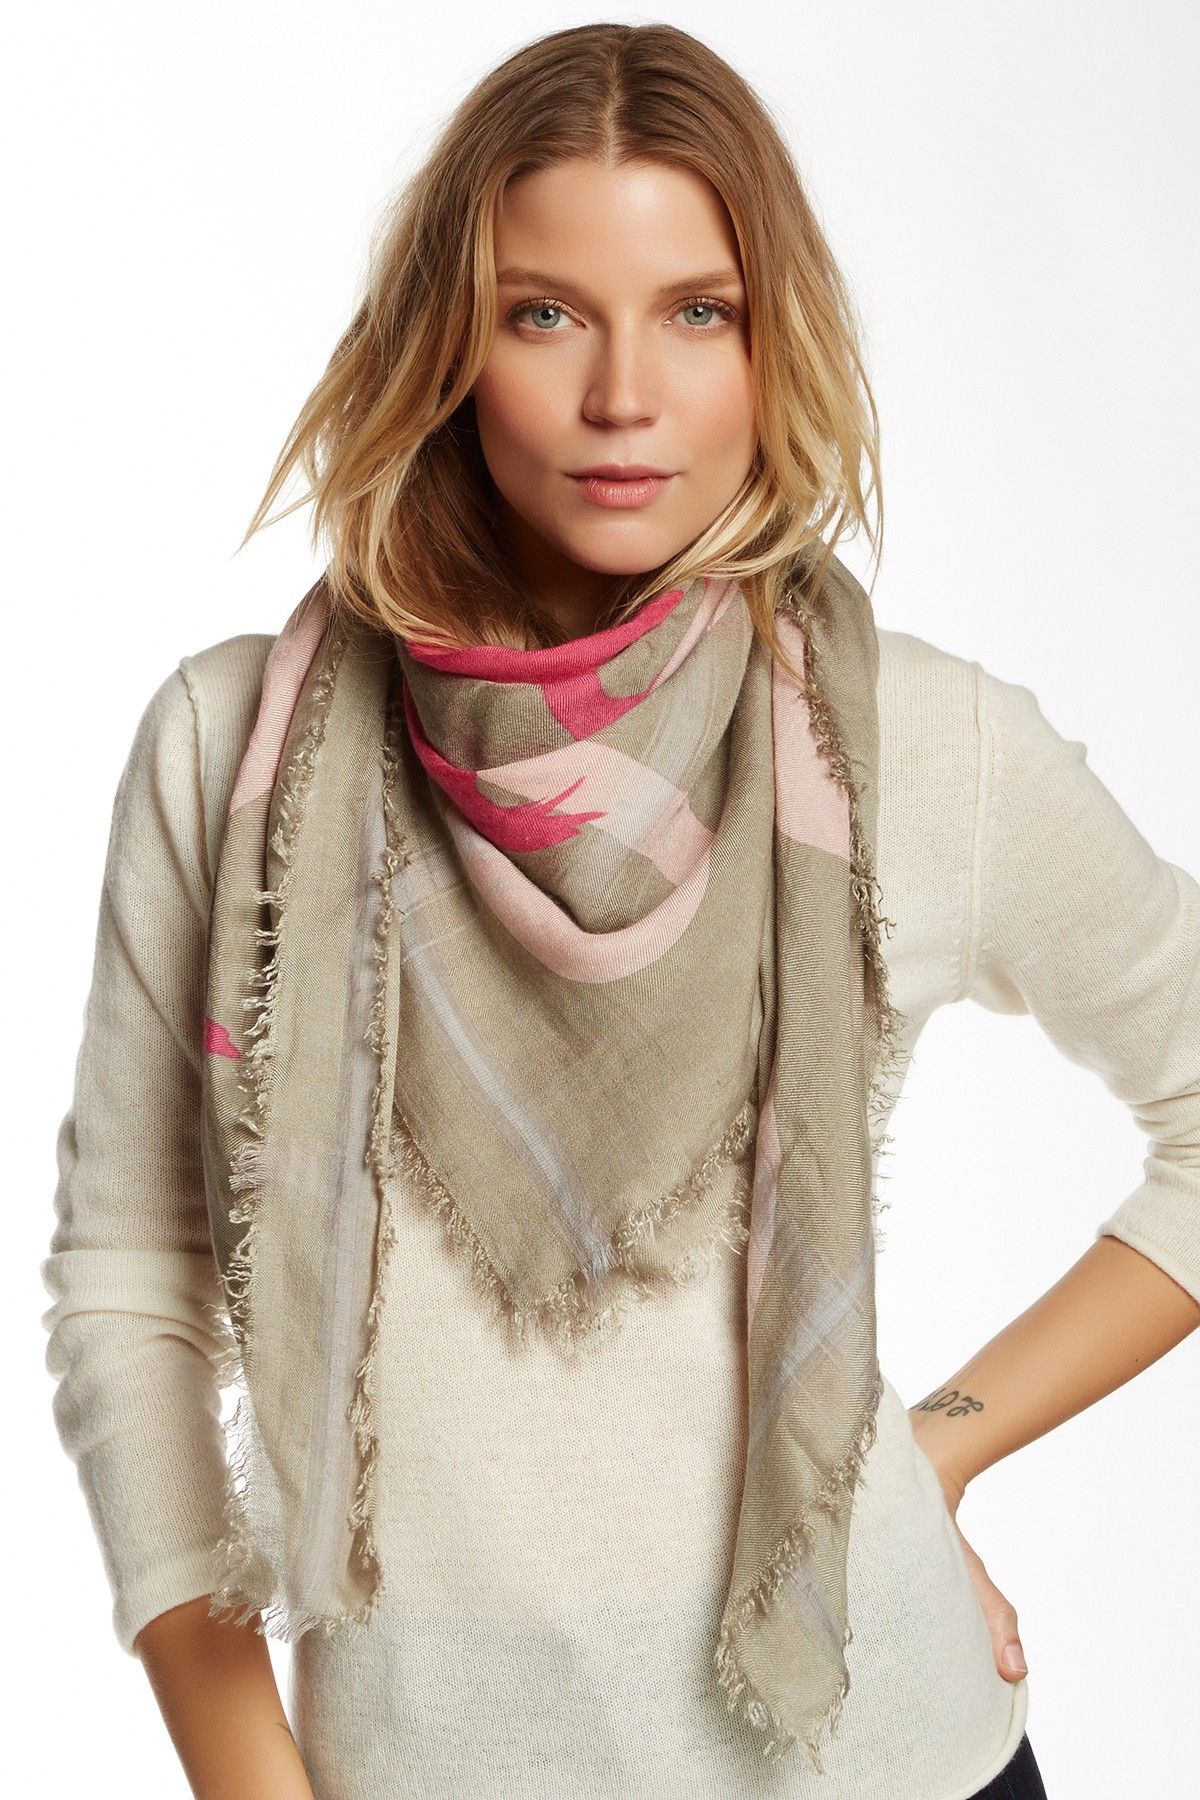 How to square a wear fringe scarf best photo